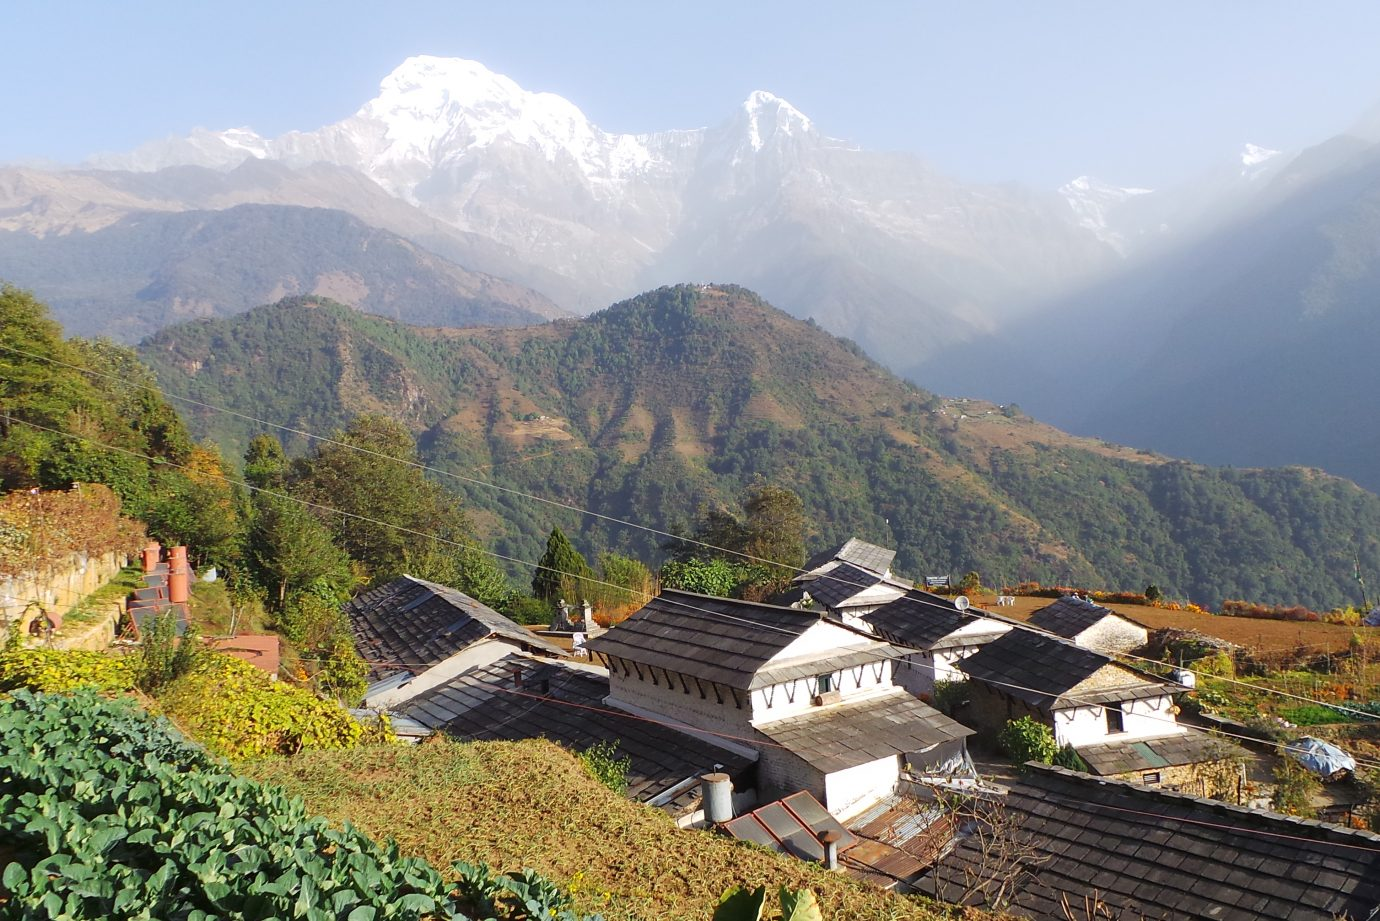 White houses in the village of Ghandruk in Nepal